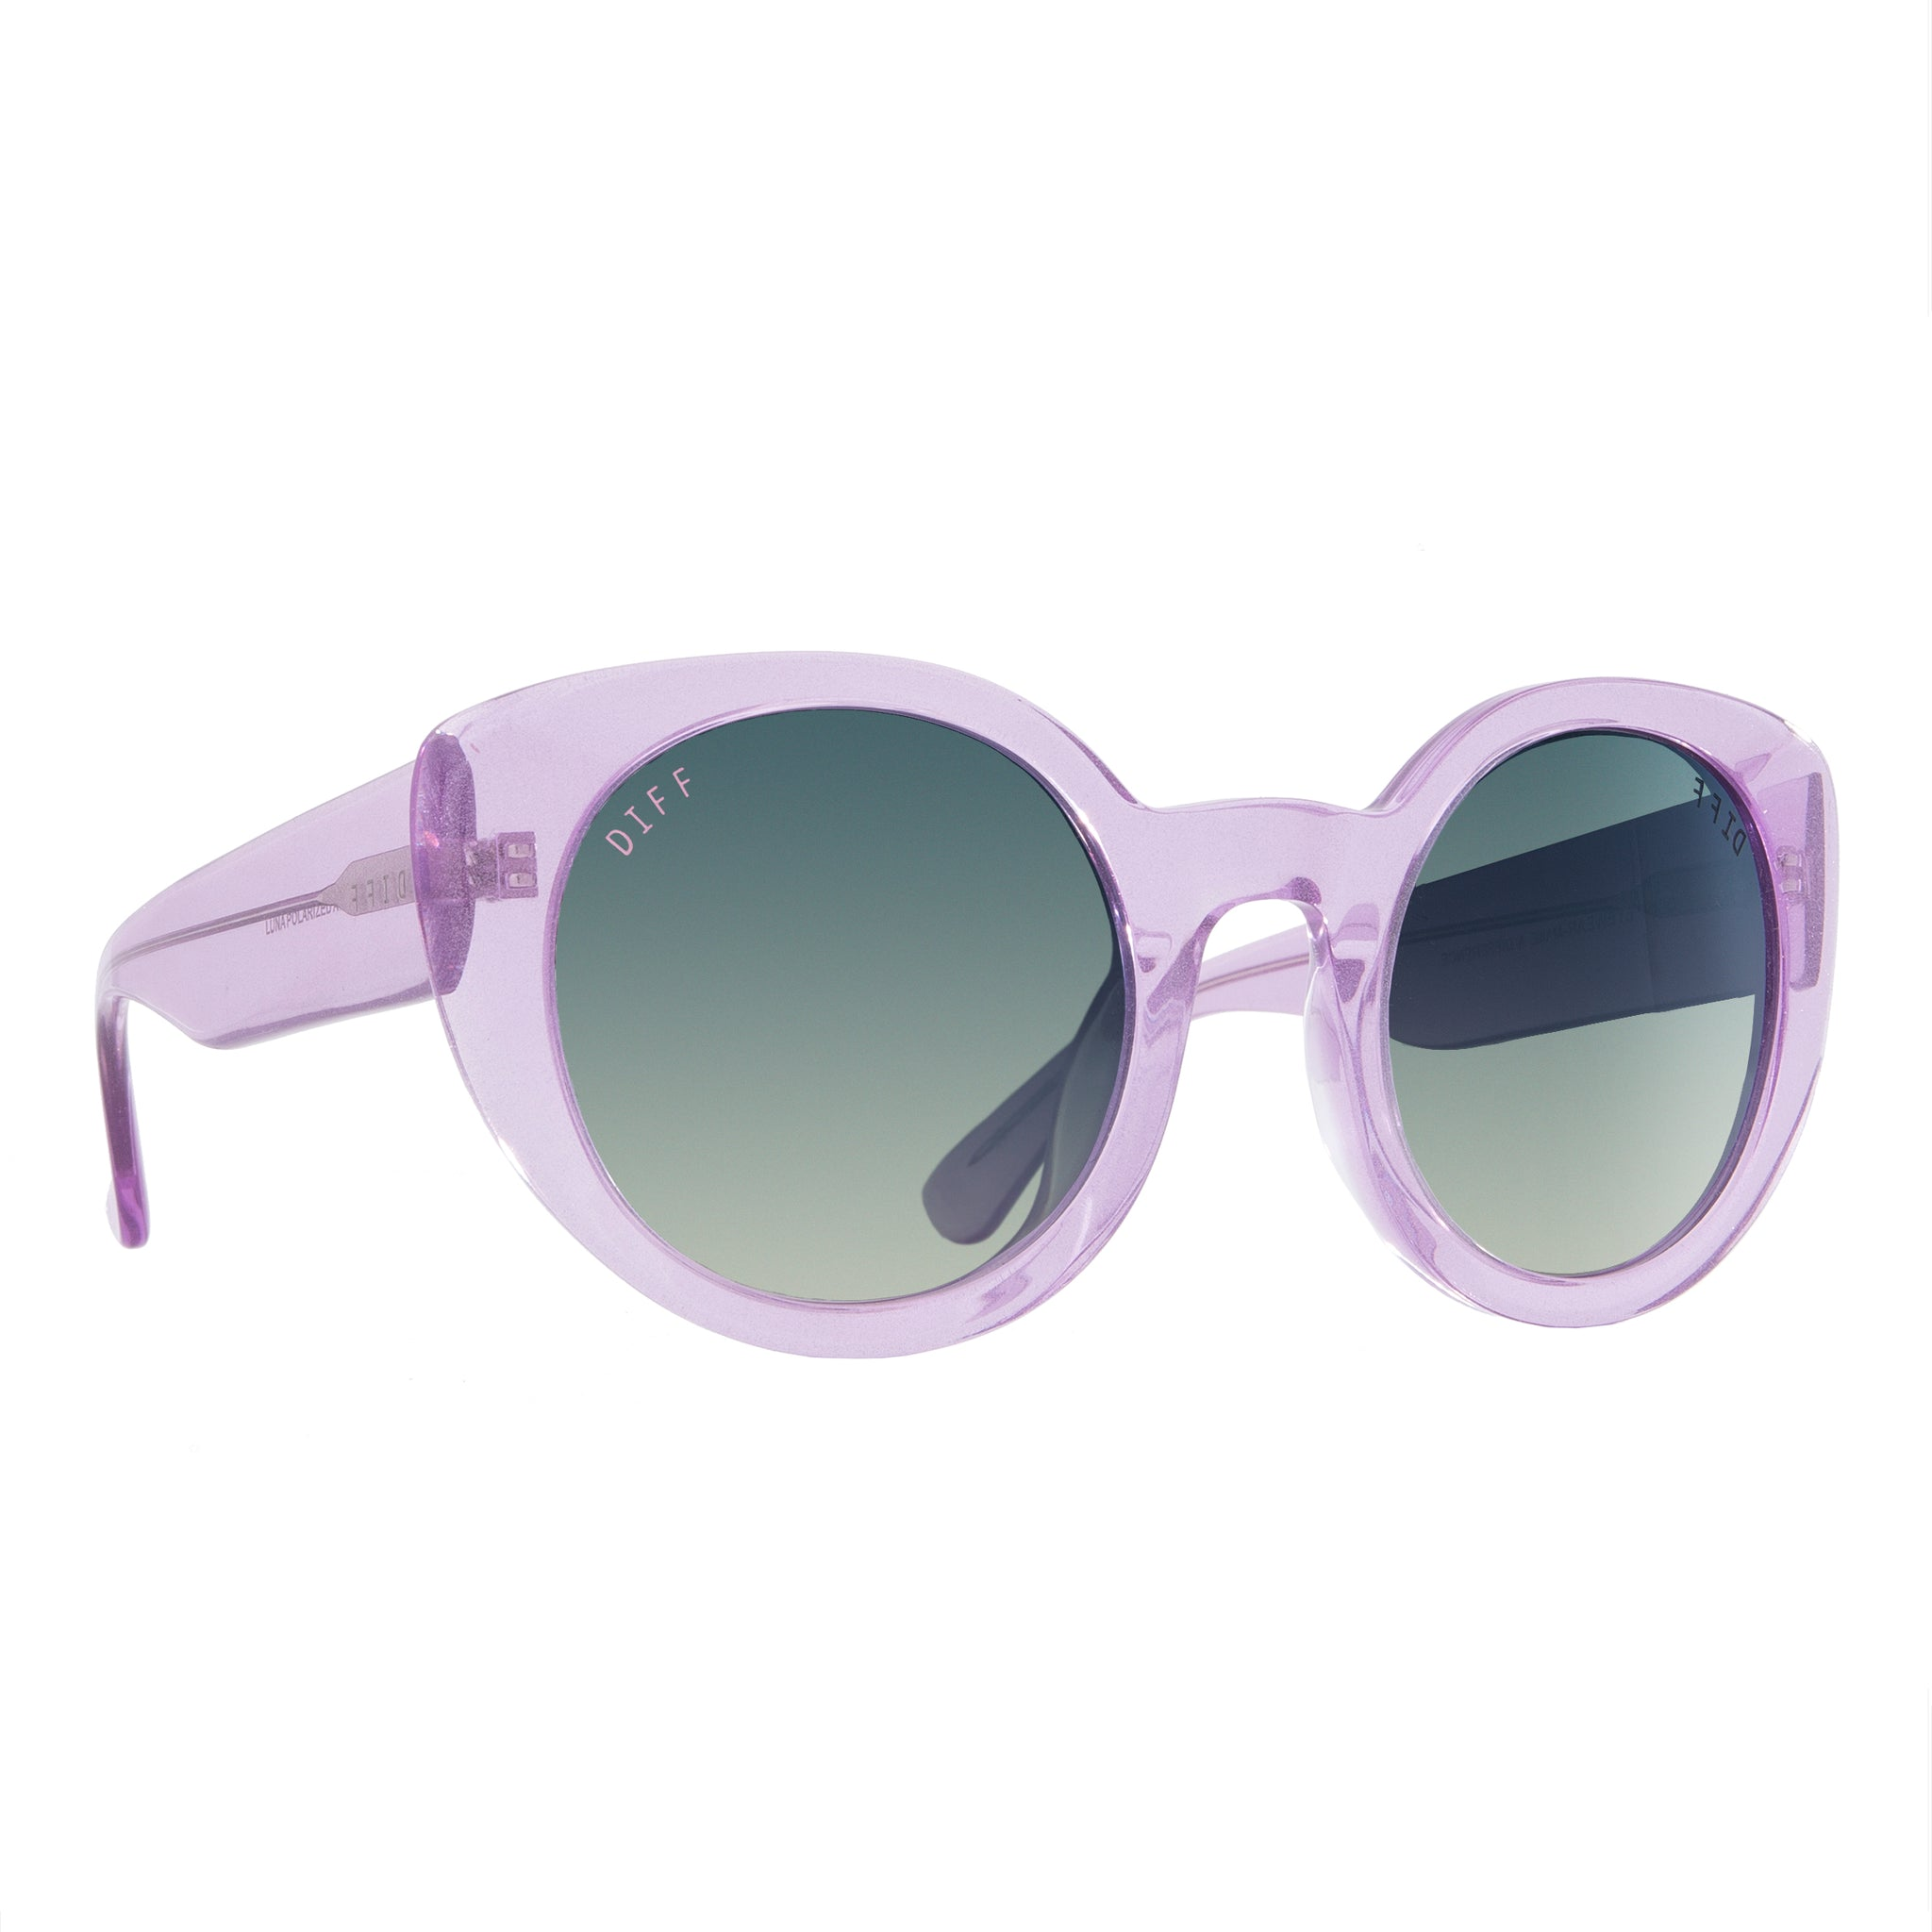 LUNA - AMETHYST GLITTER + SMOKE GRADIENT SILVER FLASH + POLARIZED